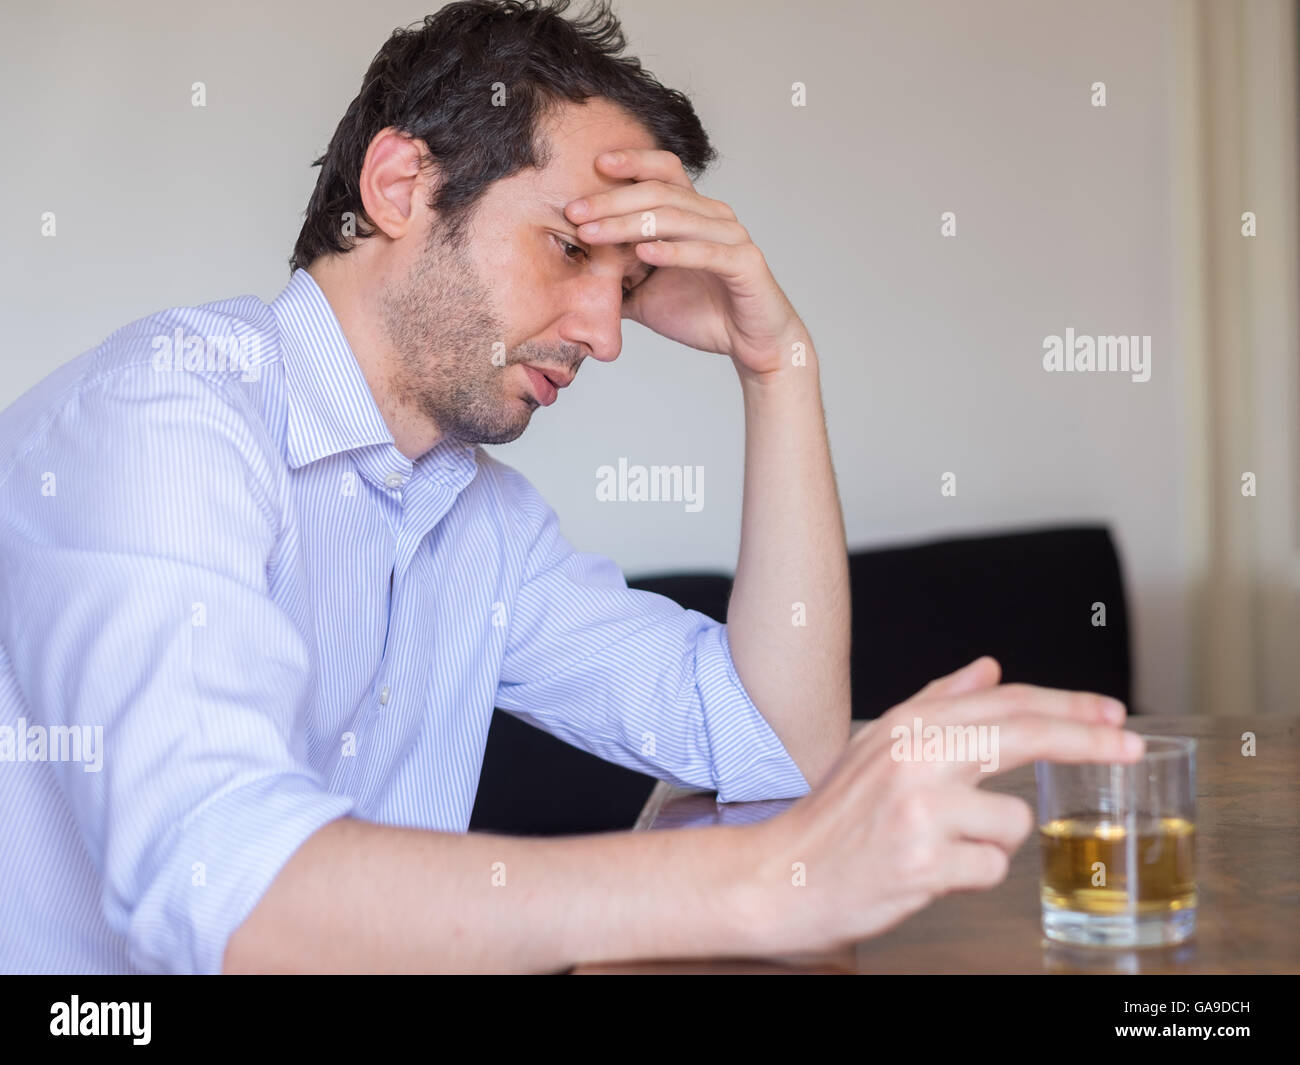 [Image: depressed-man-abusing-of-alcohol-trying-...GA9DCH.jpg]